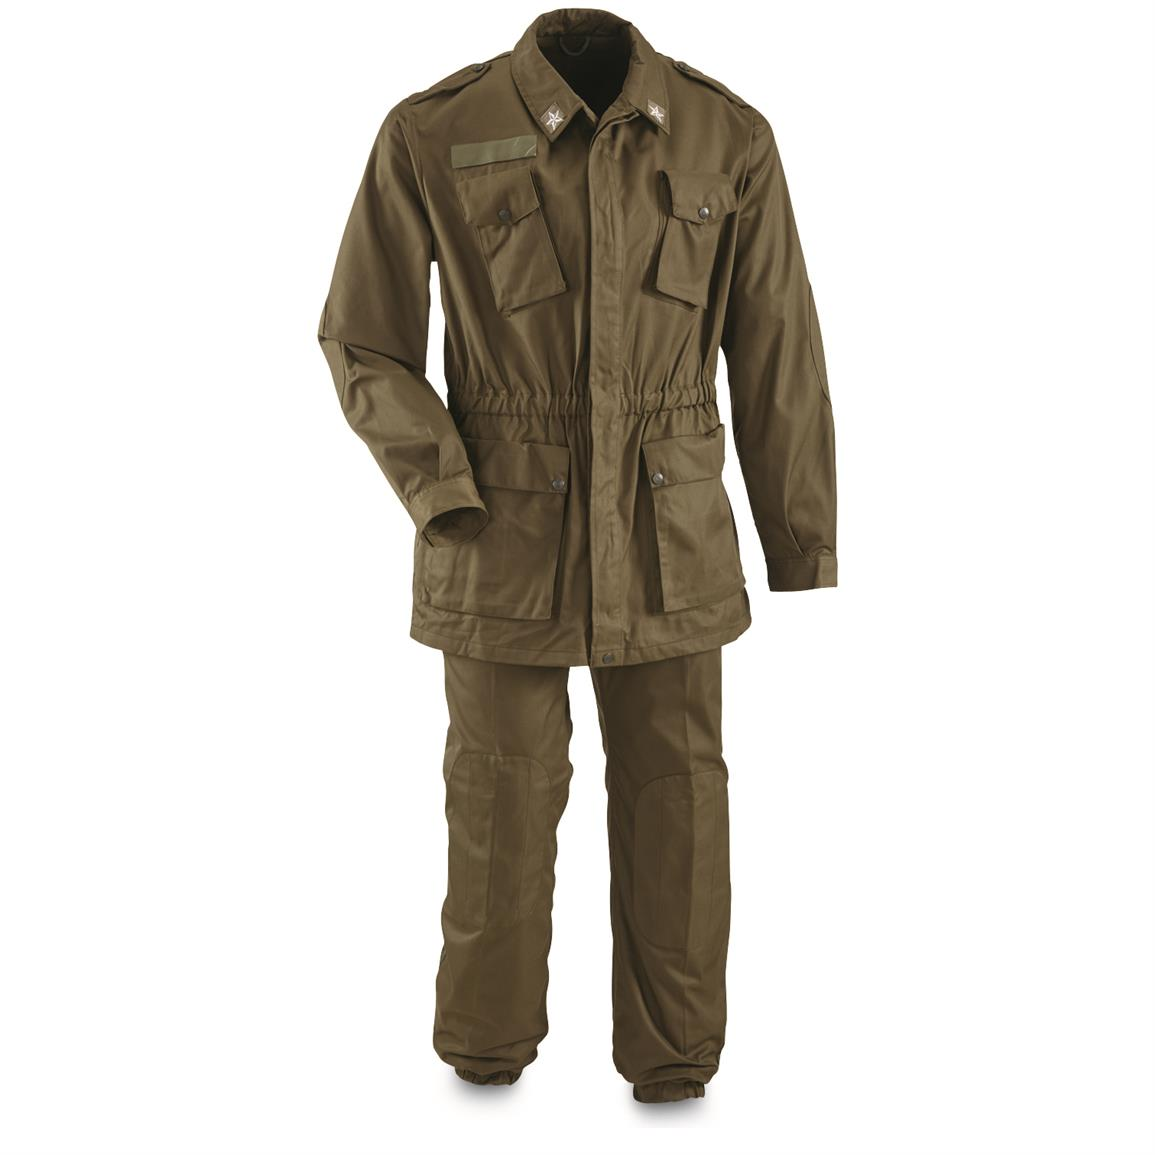 Italian Military Surplus BDU Jacket and Pants Set, New